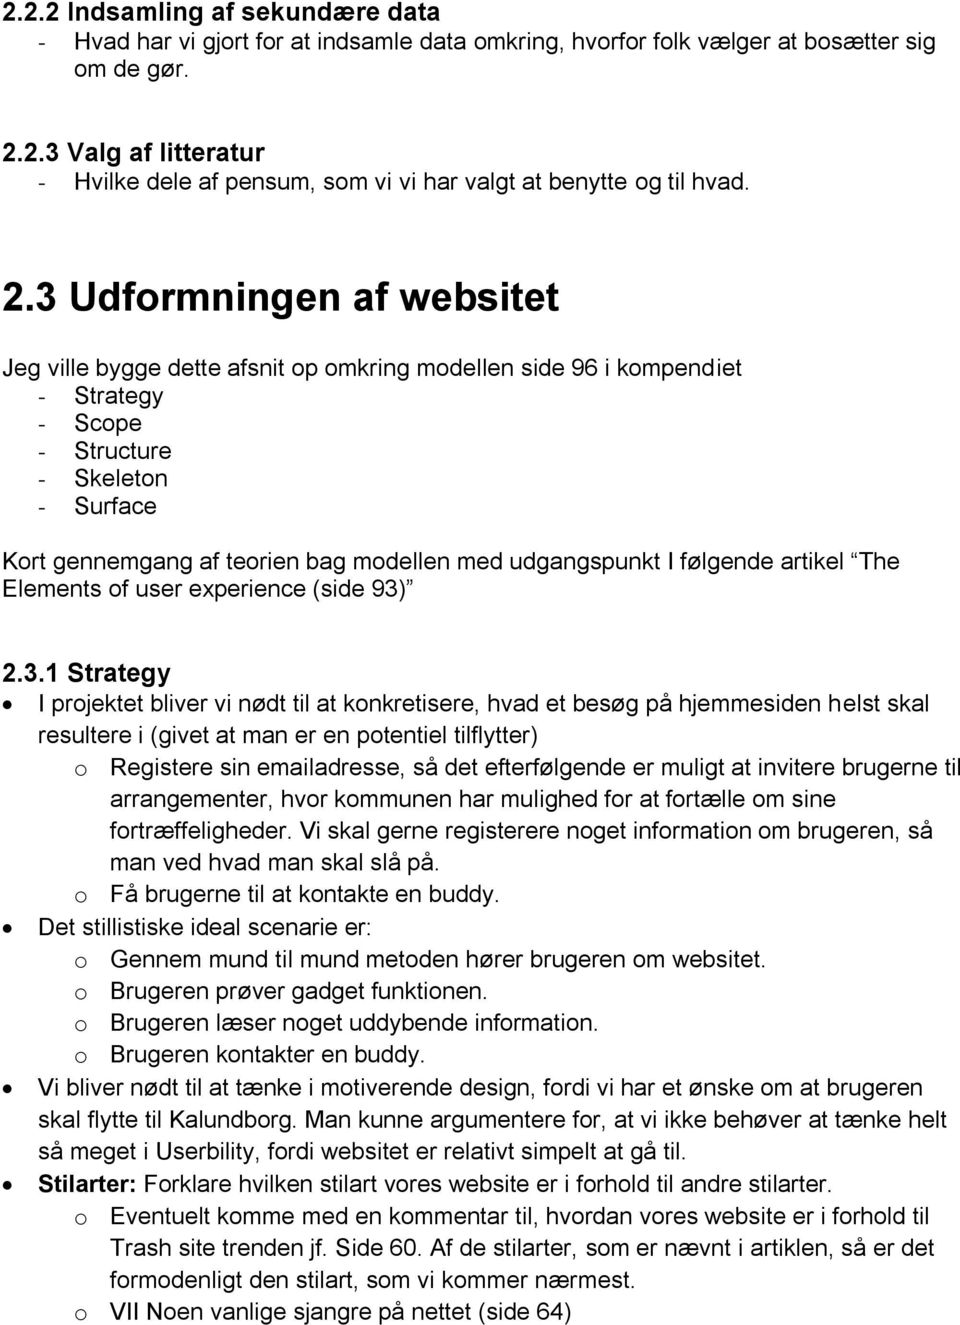 udgangspunkt I følgende artikel The Elements of user experience (side 93)